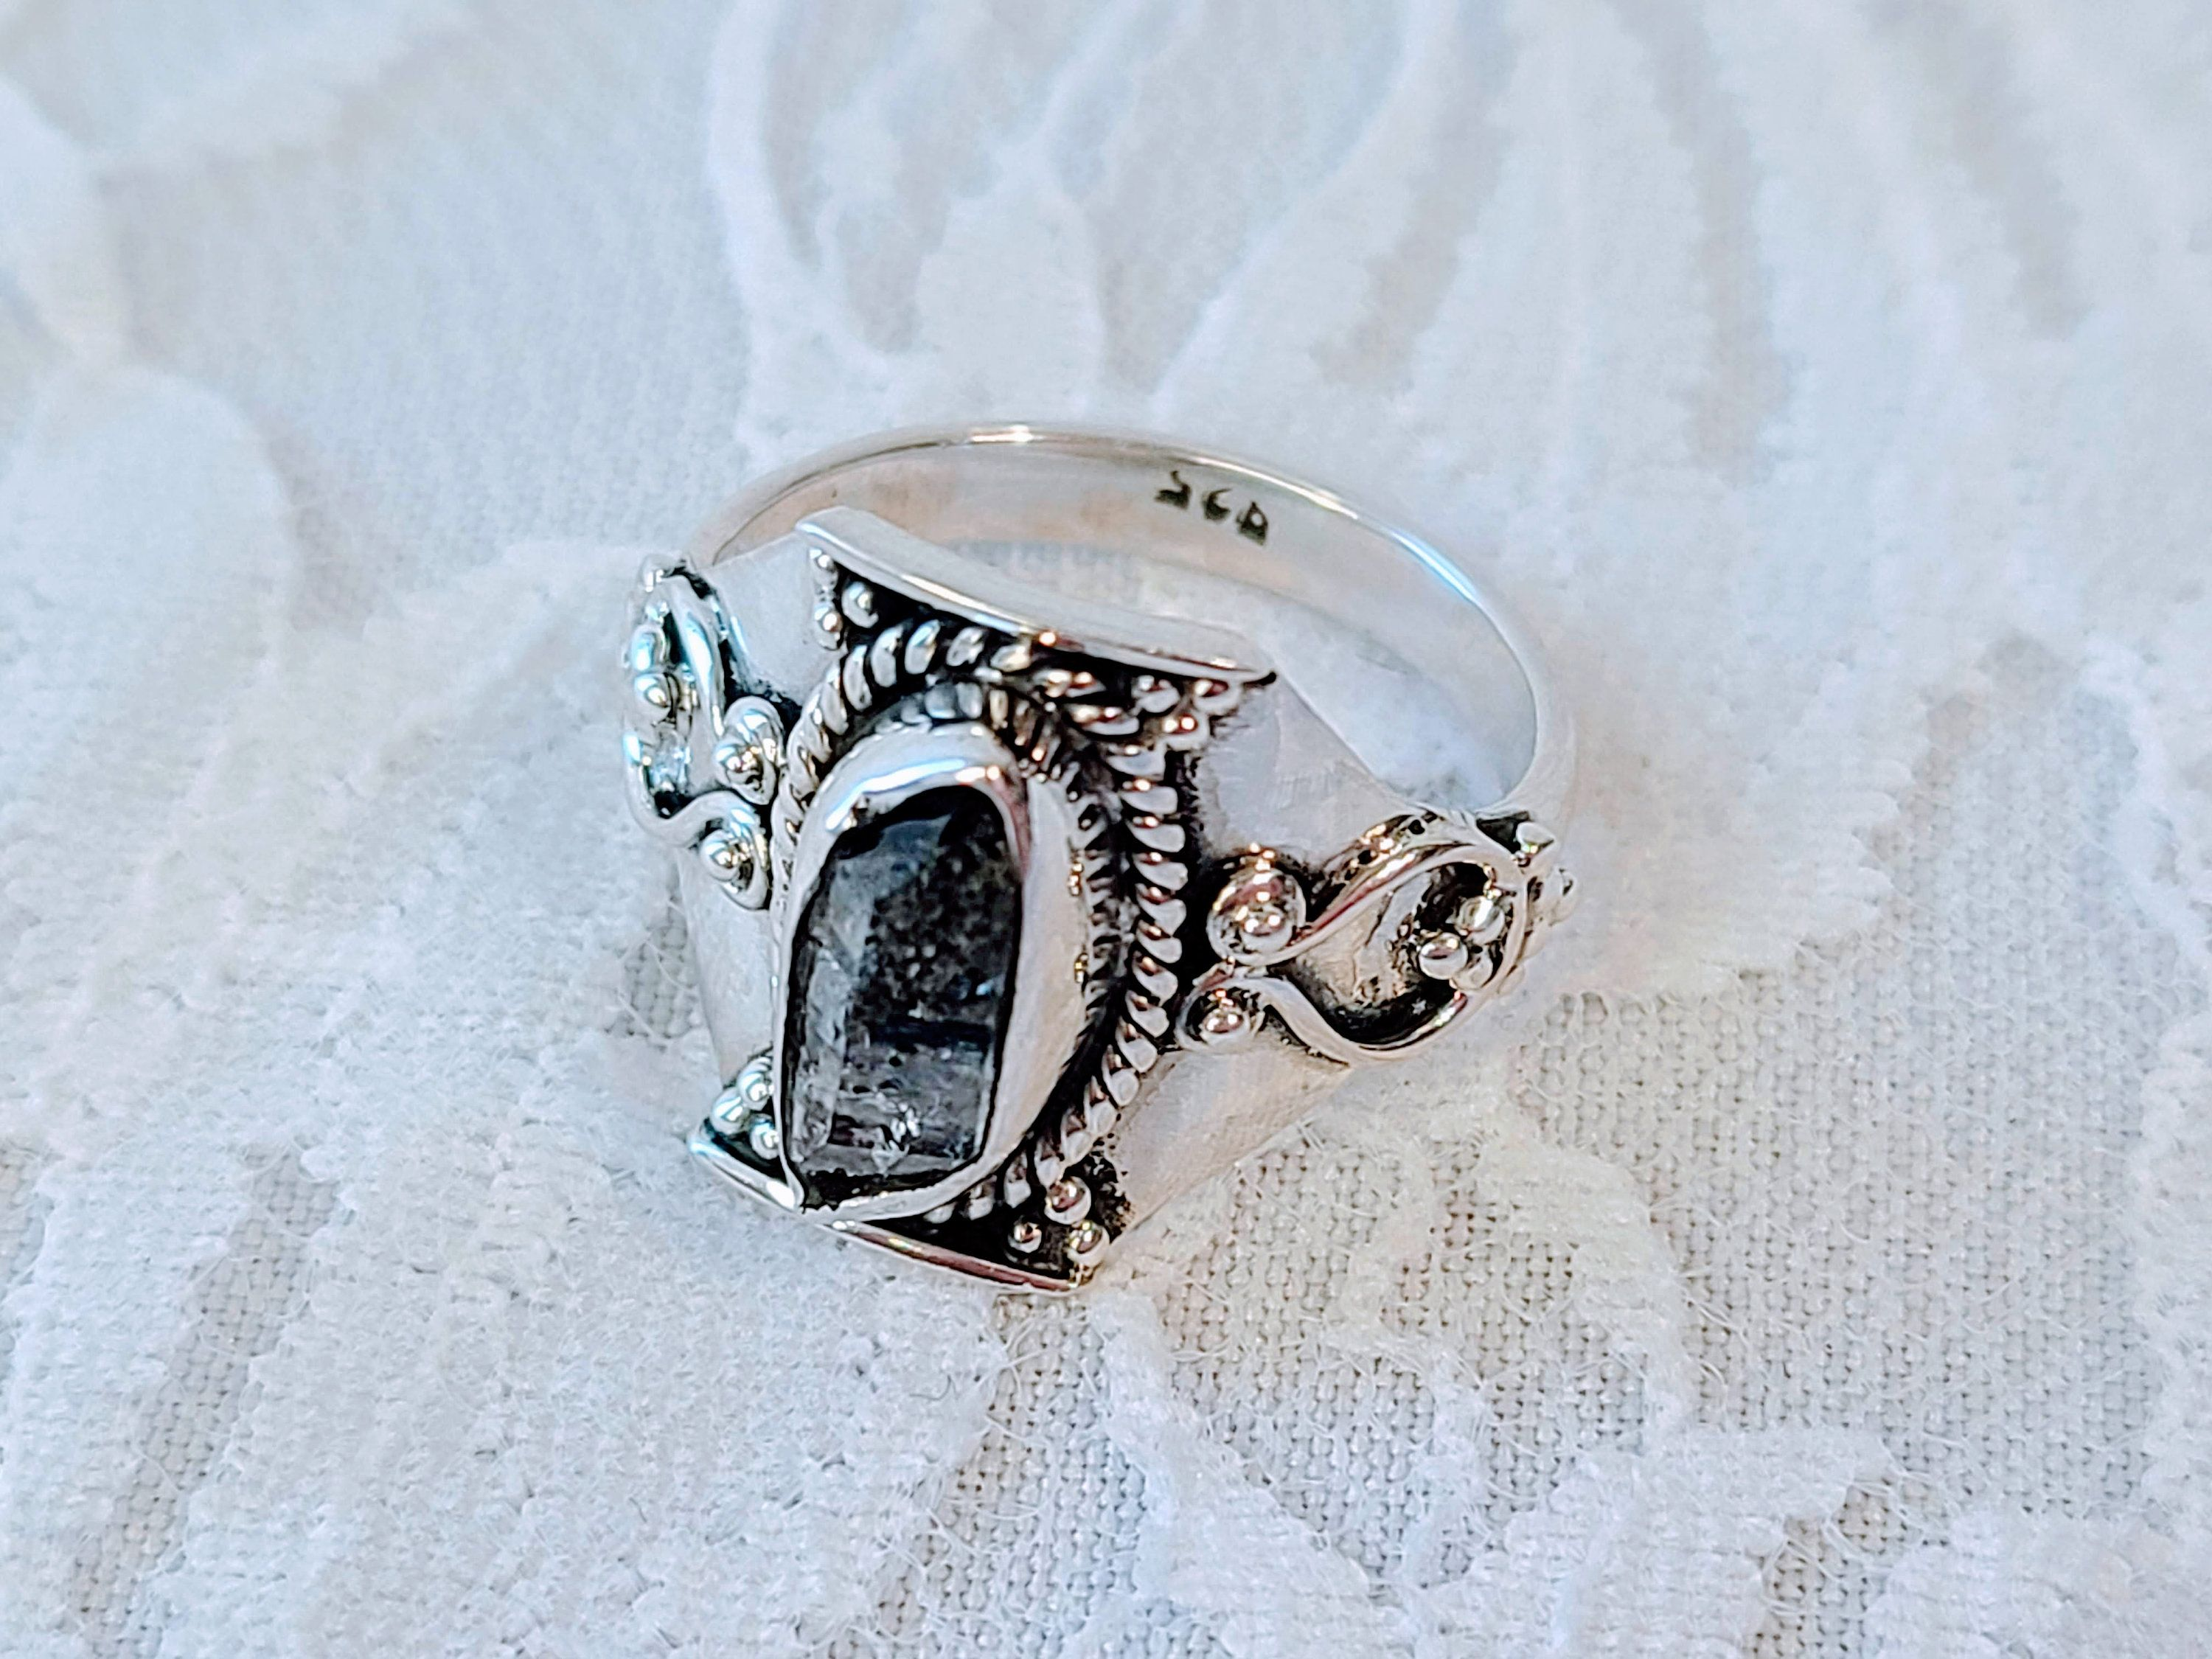 Personal Order Star Sapphire and Herkimer Diamonds Silver Ring 7 12 size,